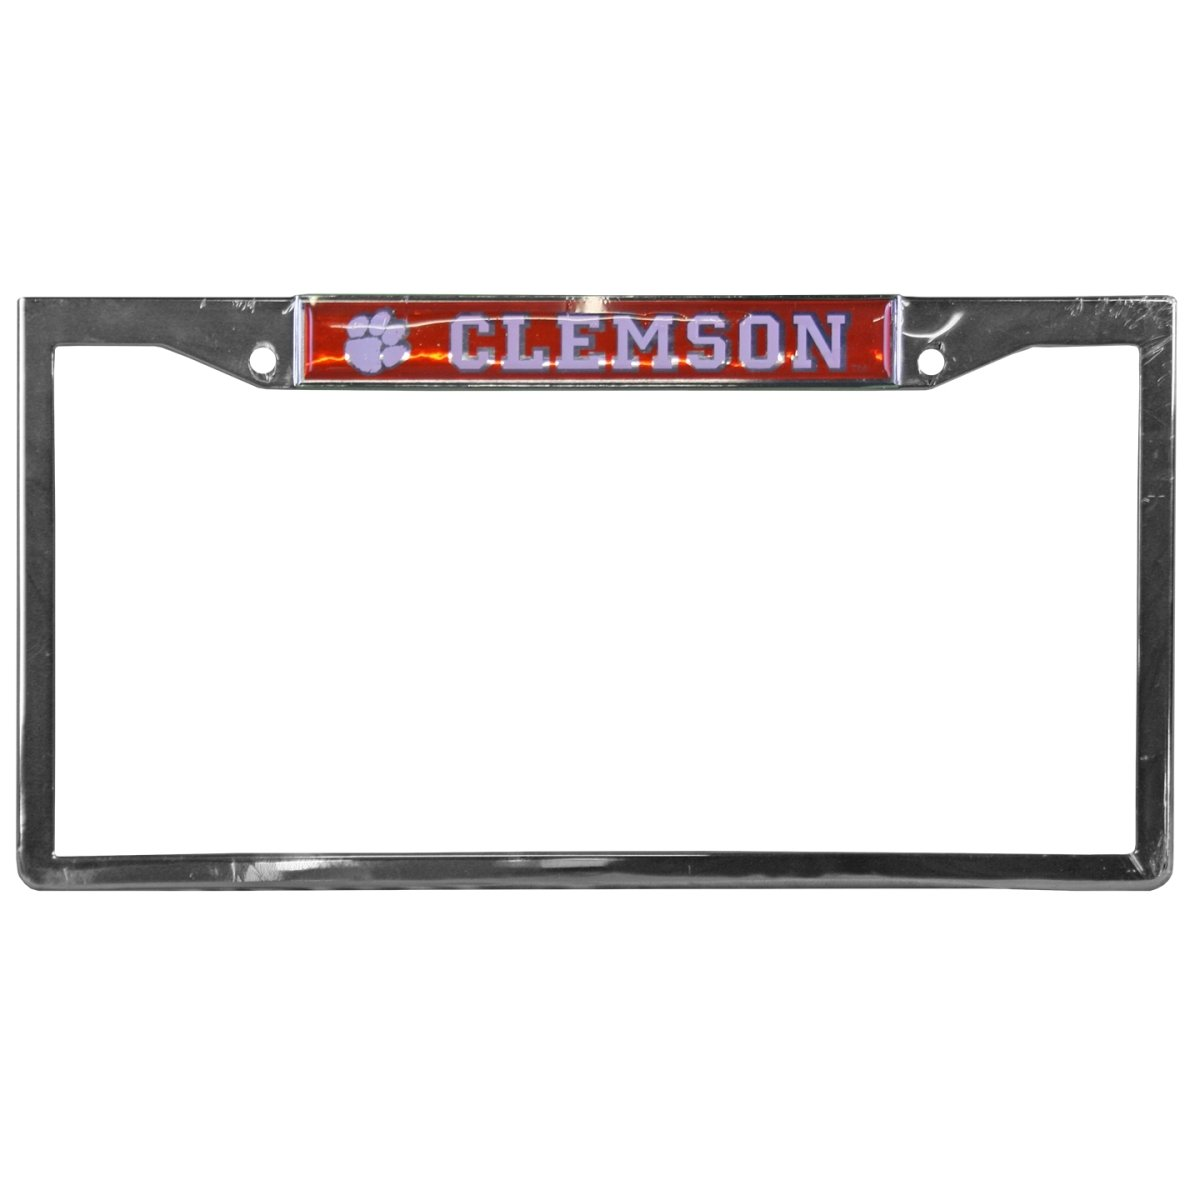 Chrome Metal Full View Tag Frame Clemson & Paw in White Over Orange - Mr. Knickerbocker